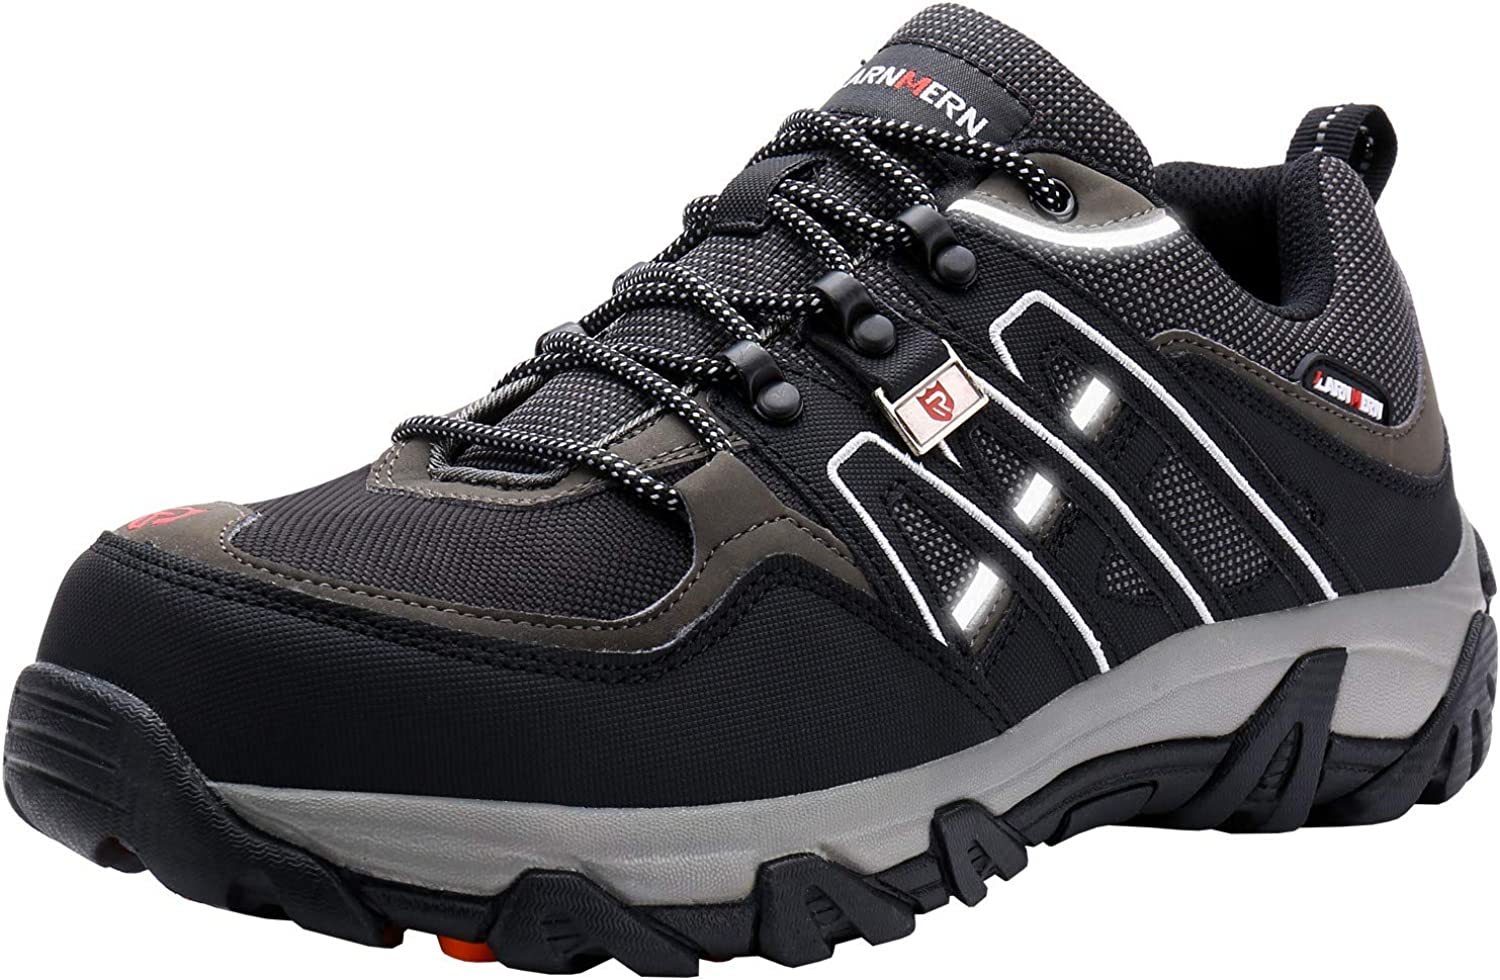 LARNMERN Steel Toe shoes Men, Safety Work Reflective Strip Puncture Proof Footwear Industrial & Construction shoes